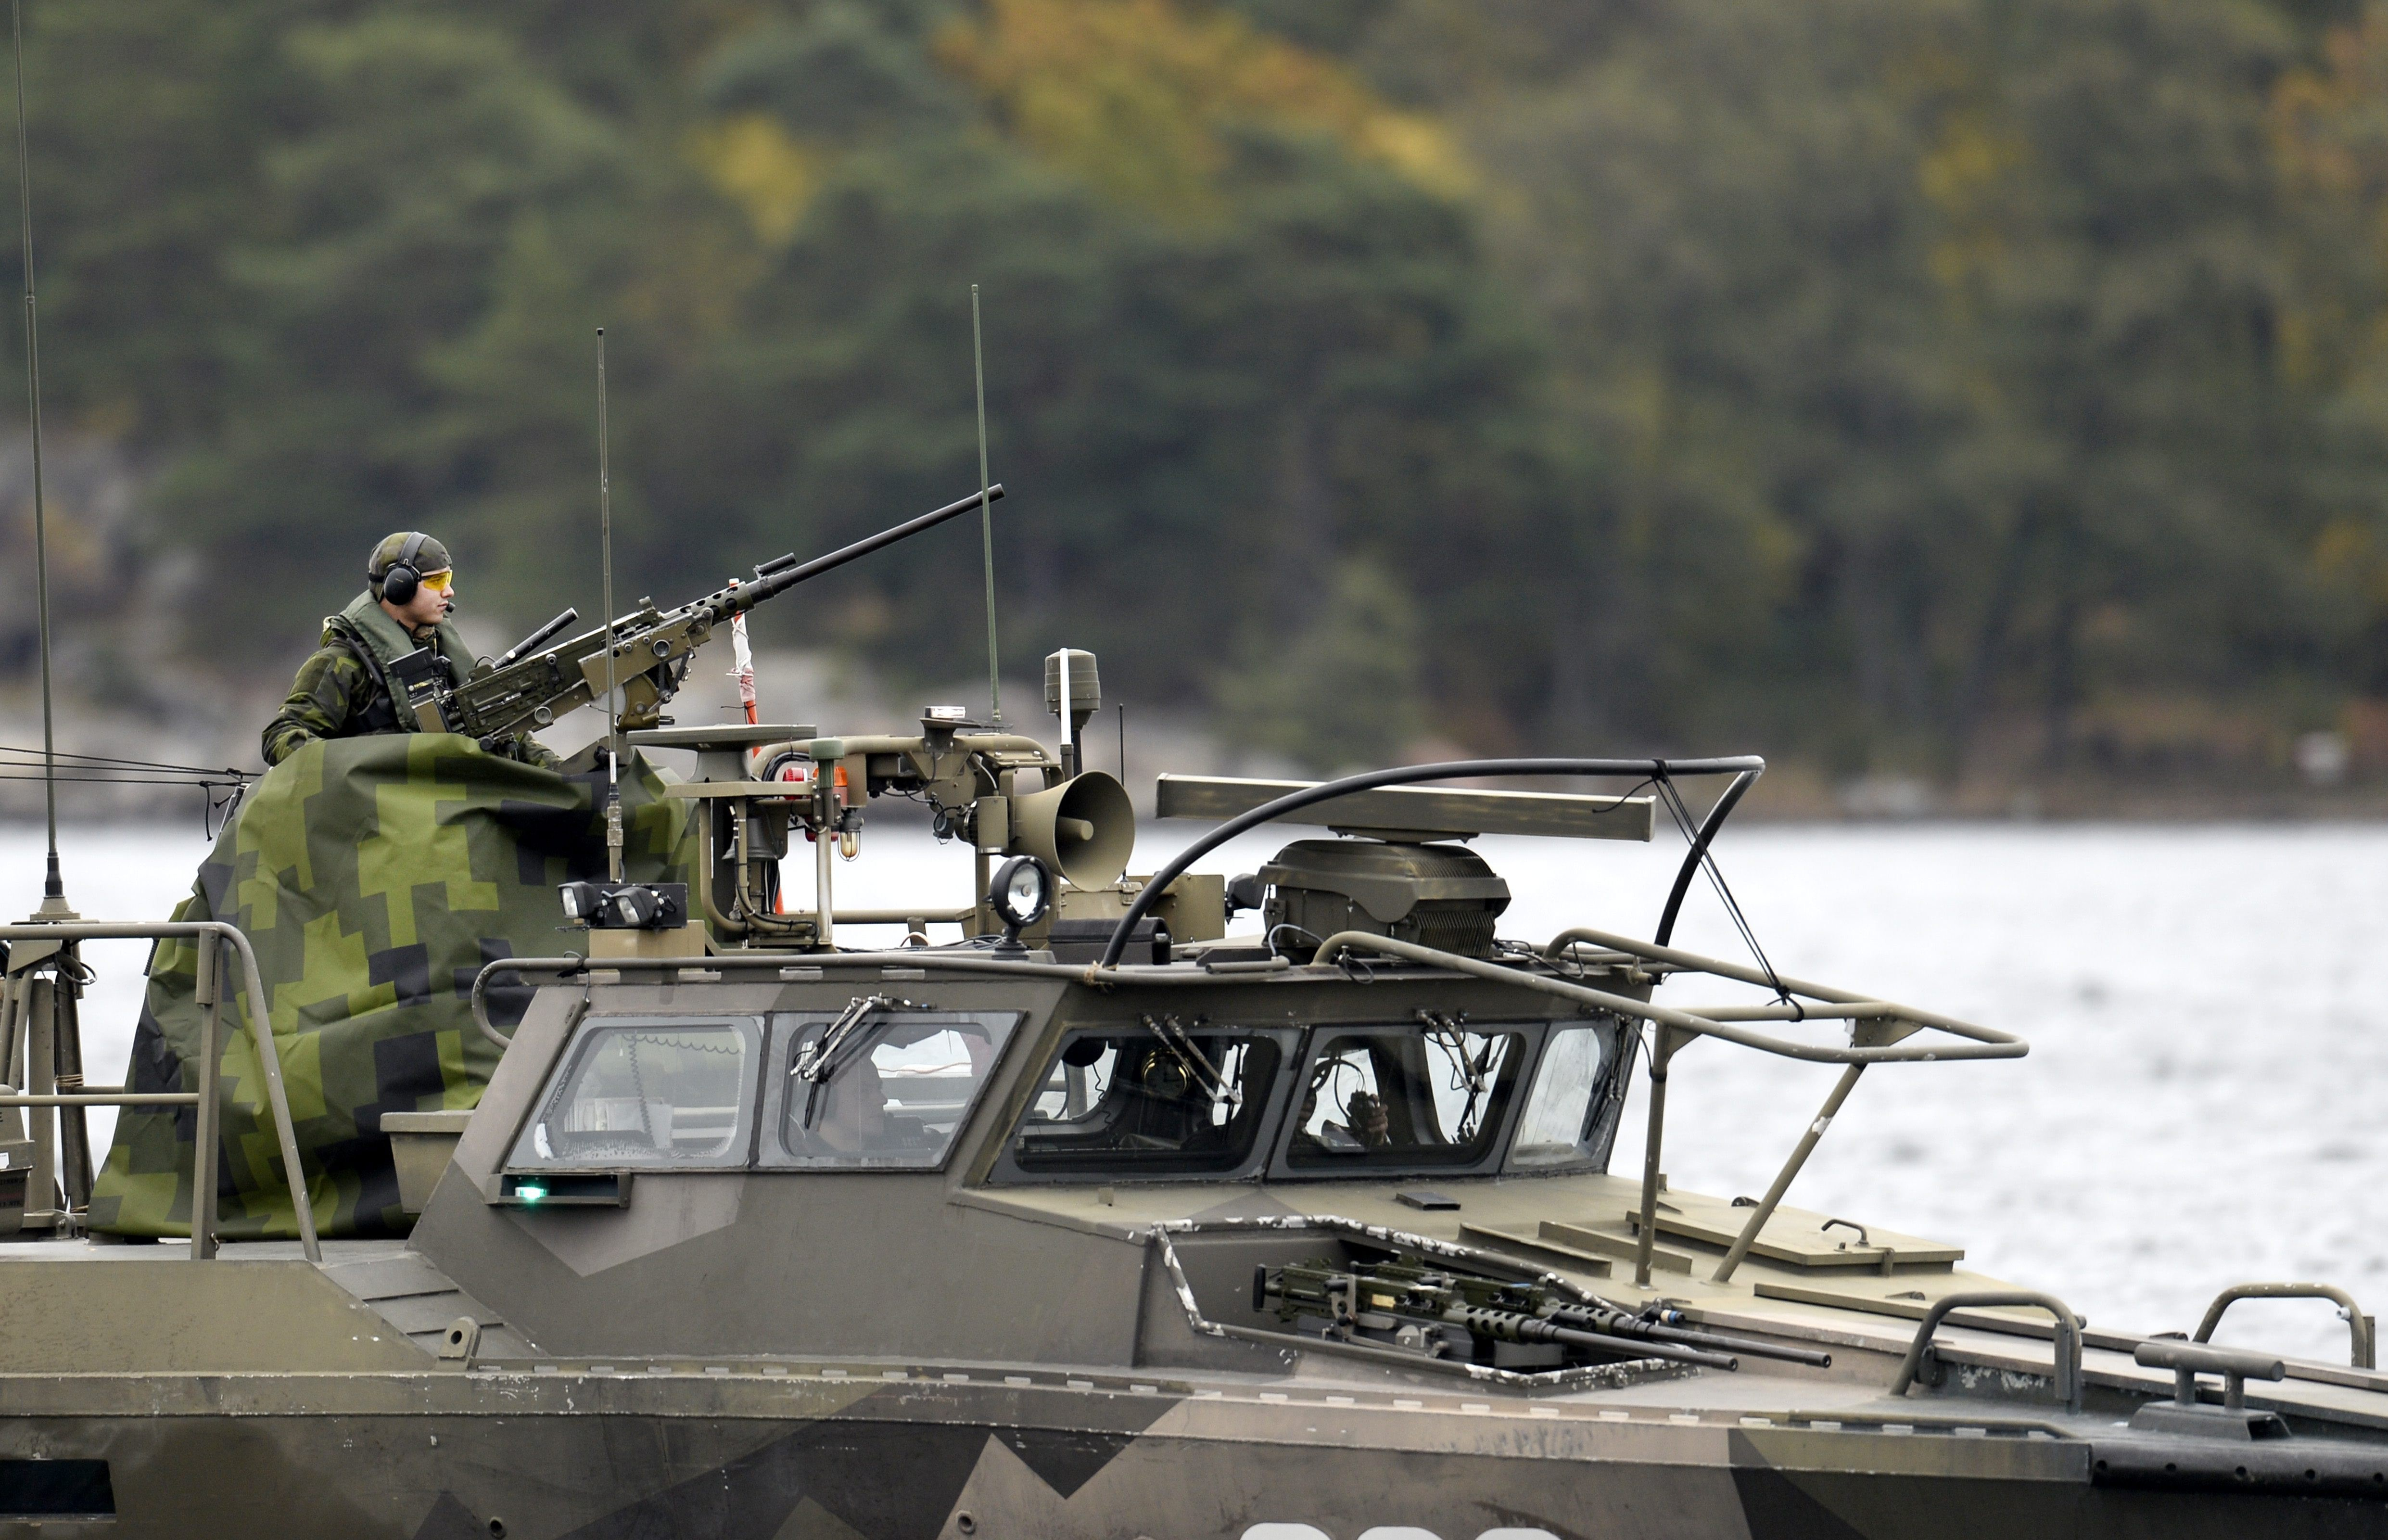 A Swedish Navy fast-attack craft patrols in the the Stockholm Archipelago, Sweden, on October 18 2014. The Swedish armed forces launched a military operation around the islands off Stockholm following reports of suspicious 'foreign underwater activity'. Analysis of this event was one of the top stories on Eye on the Arctic this week. (Pontus Lundahl/AFP/Getty Images)